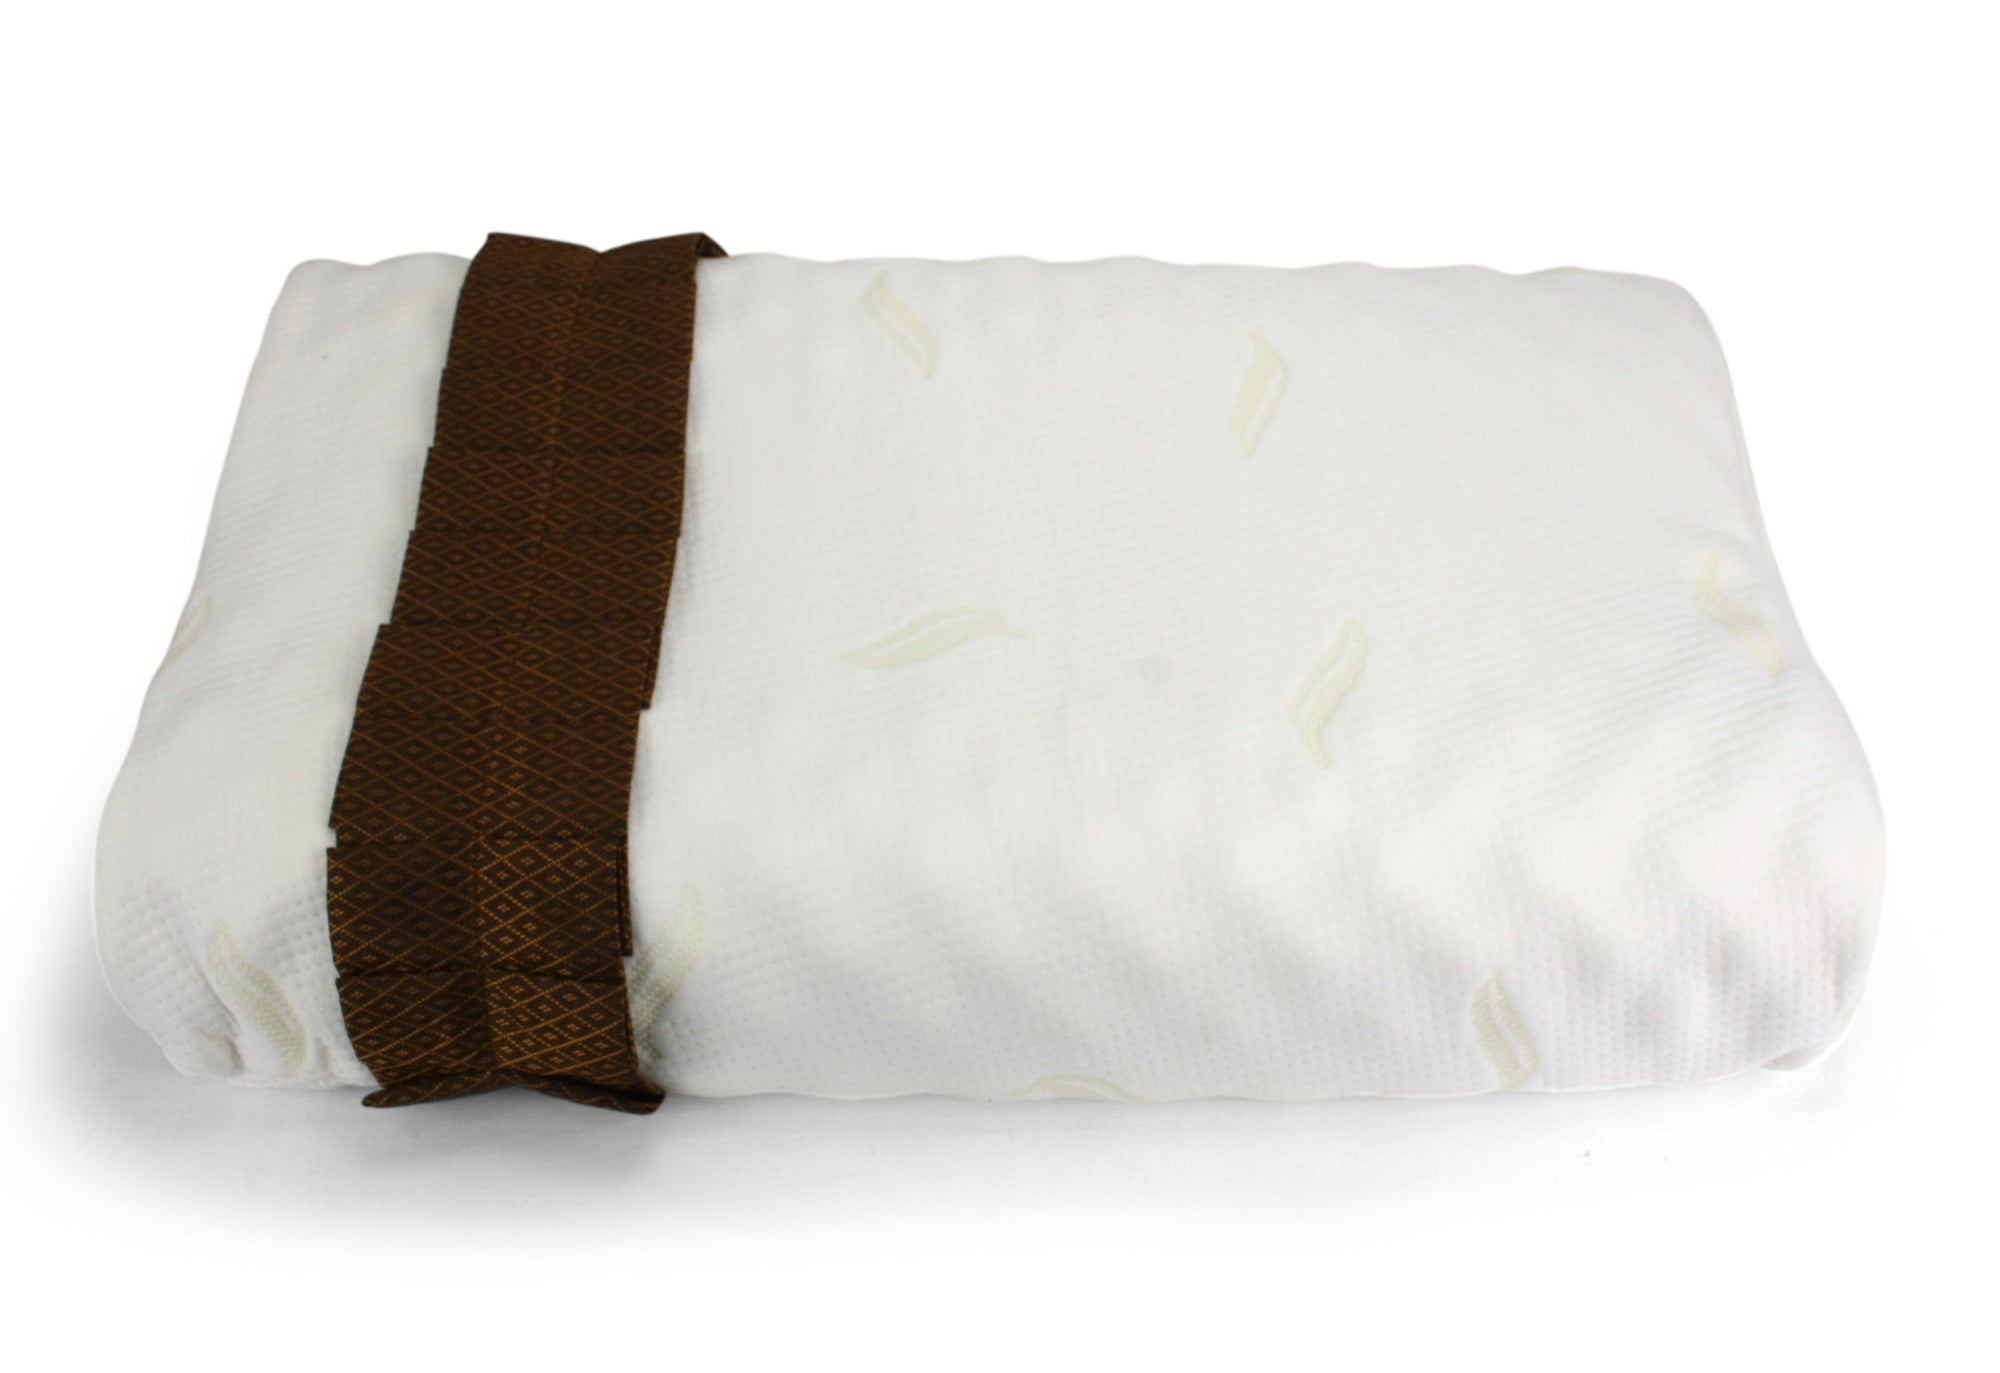 Thai natural latex herbal pillow, 60cm x 36cm x 13cm. - farangshop-co